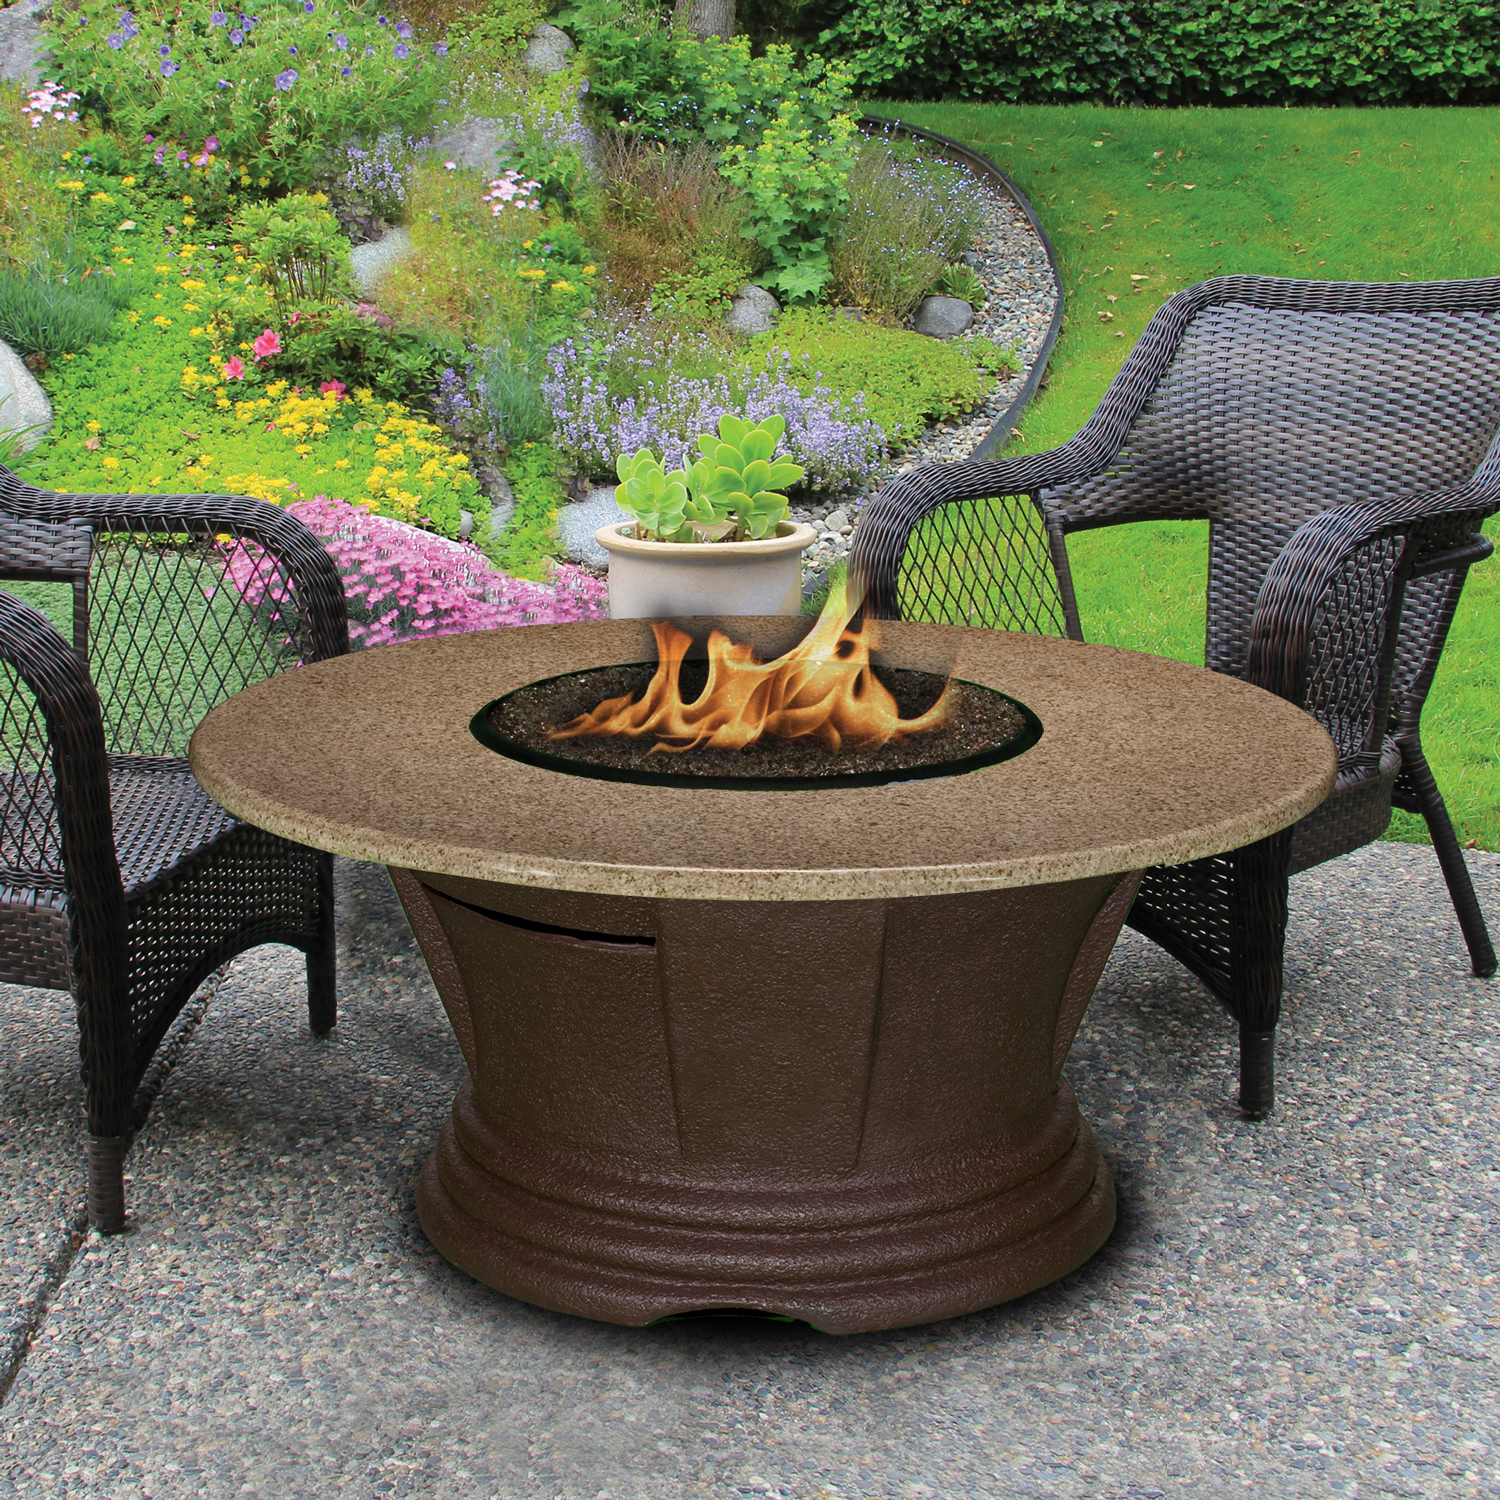 san simeon brown base sunset gold Top Result 50 Lovely Outdoor Gas Fire Bowl